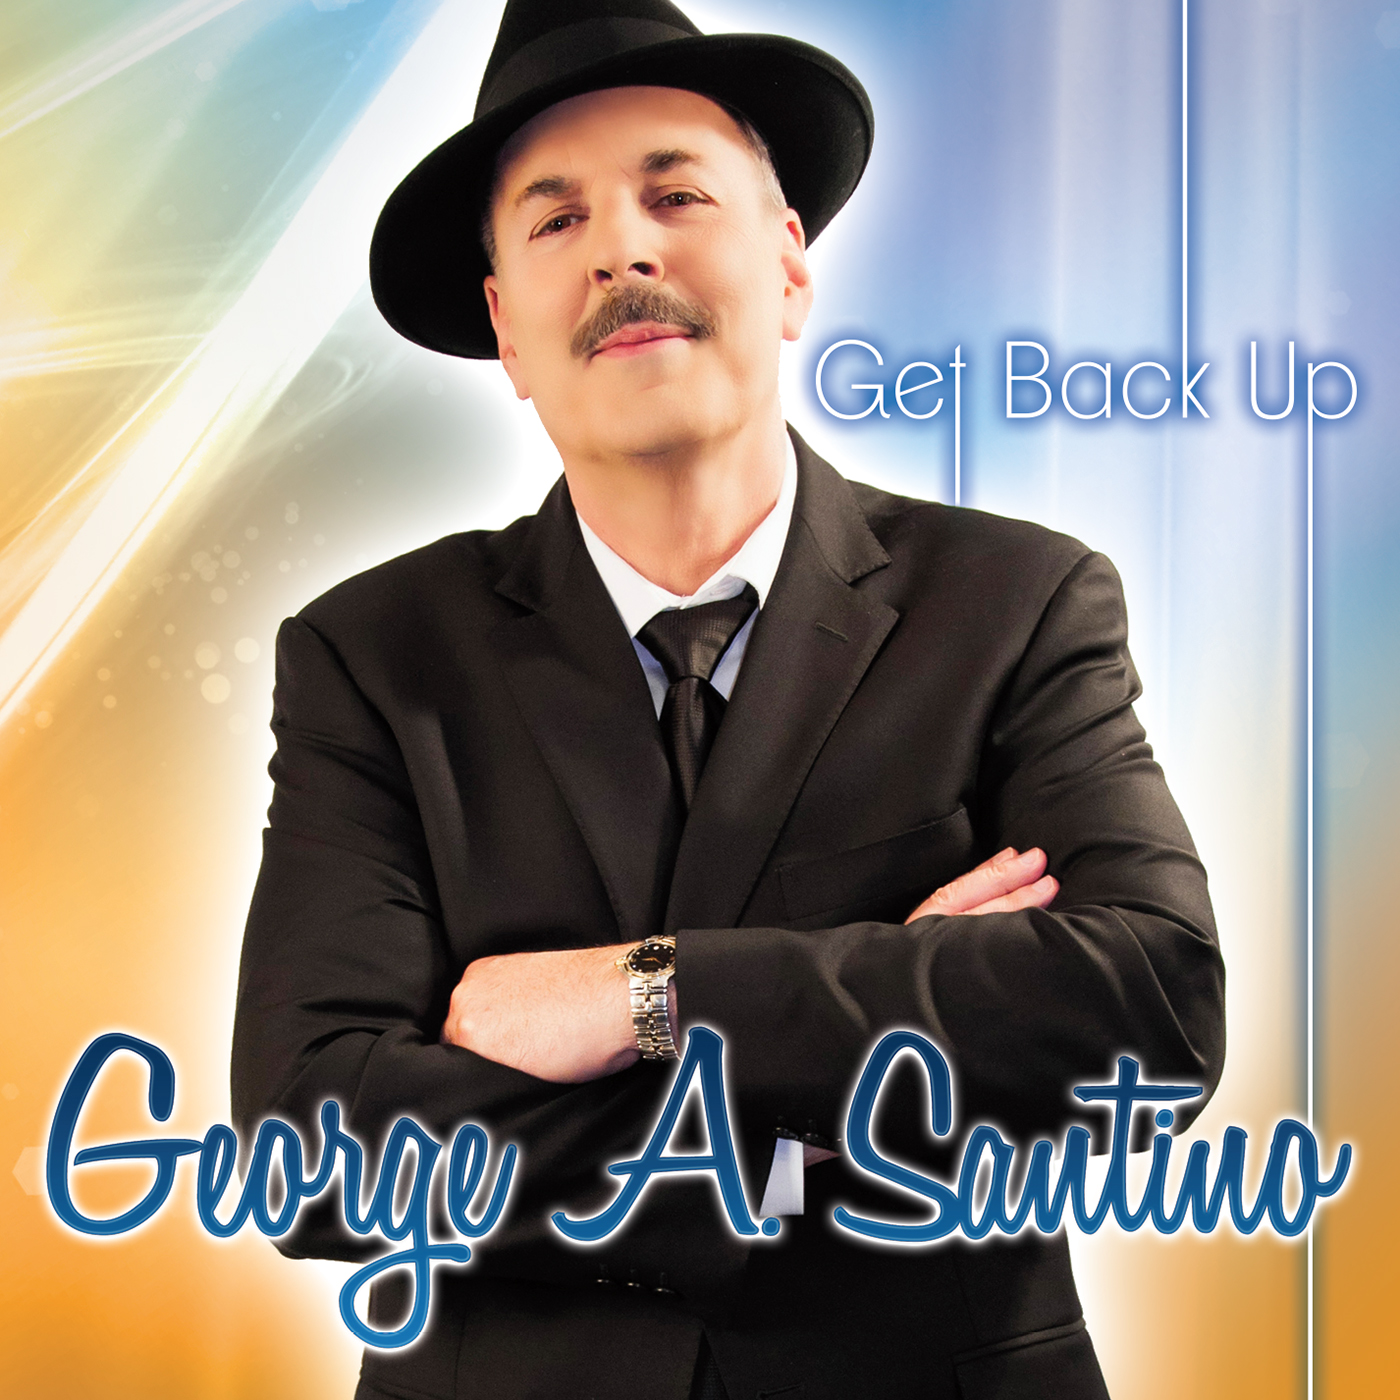 Get Back Up CD cover